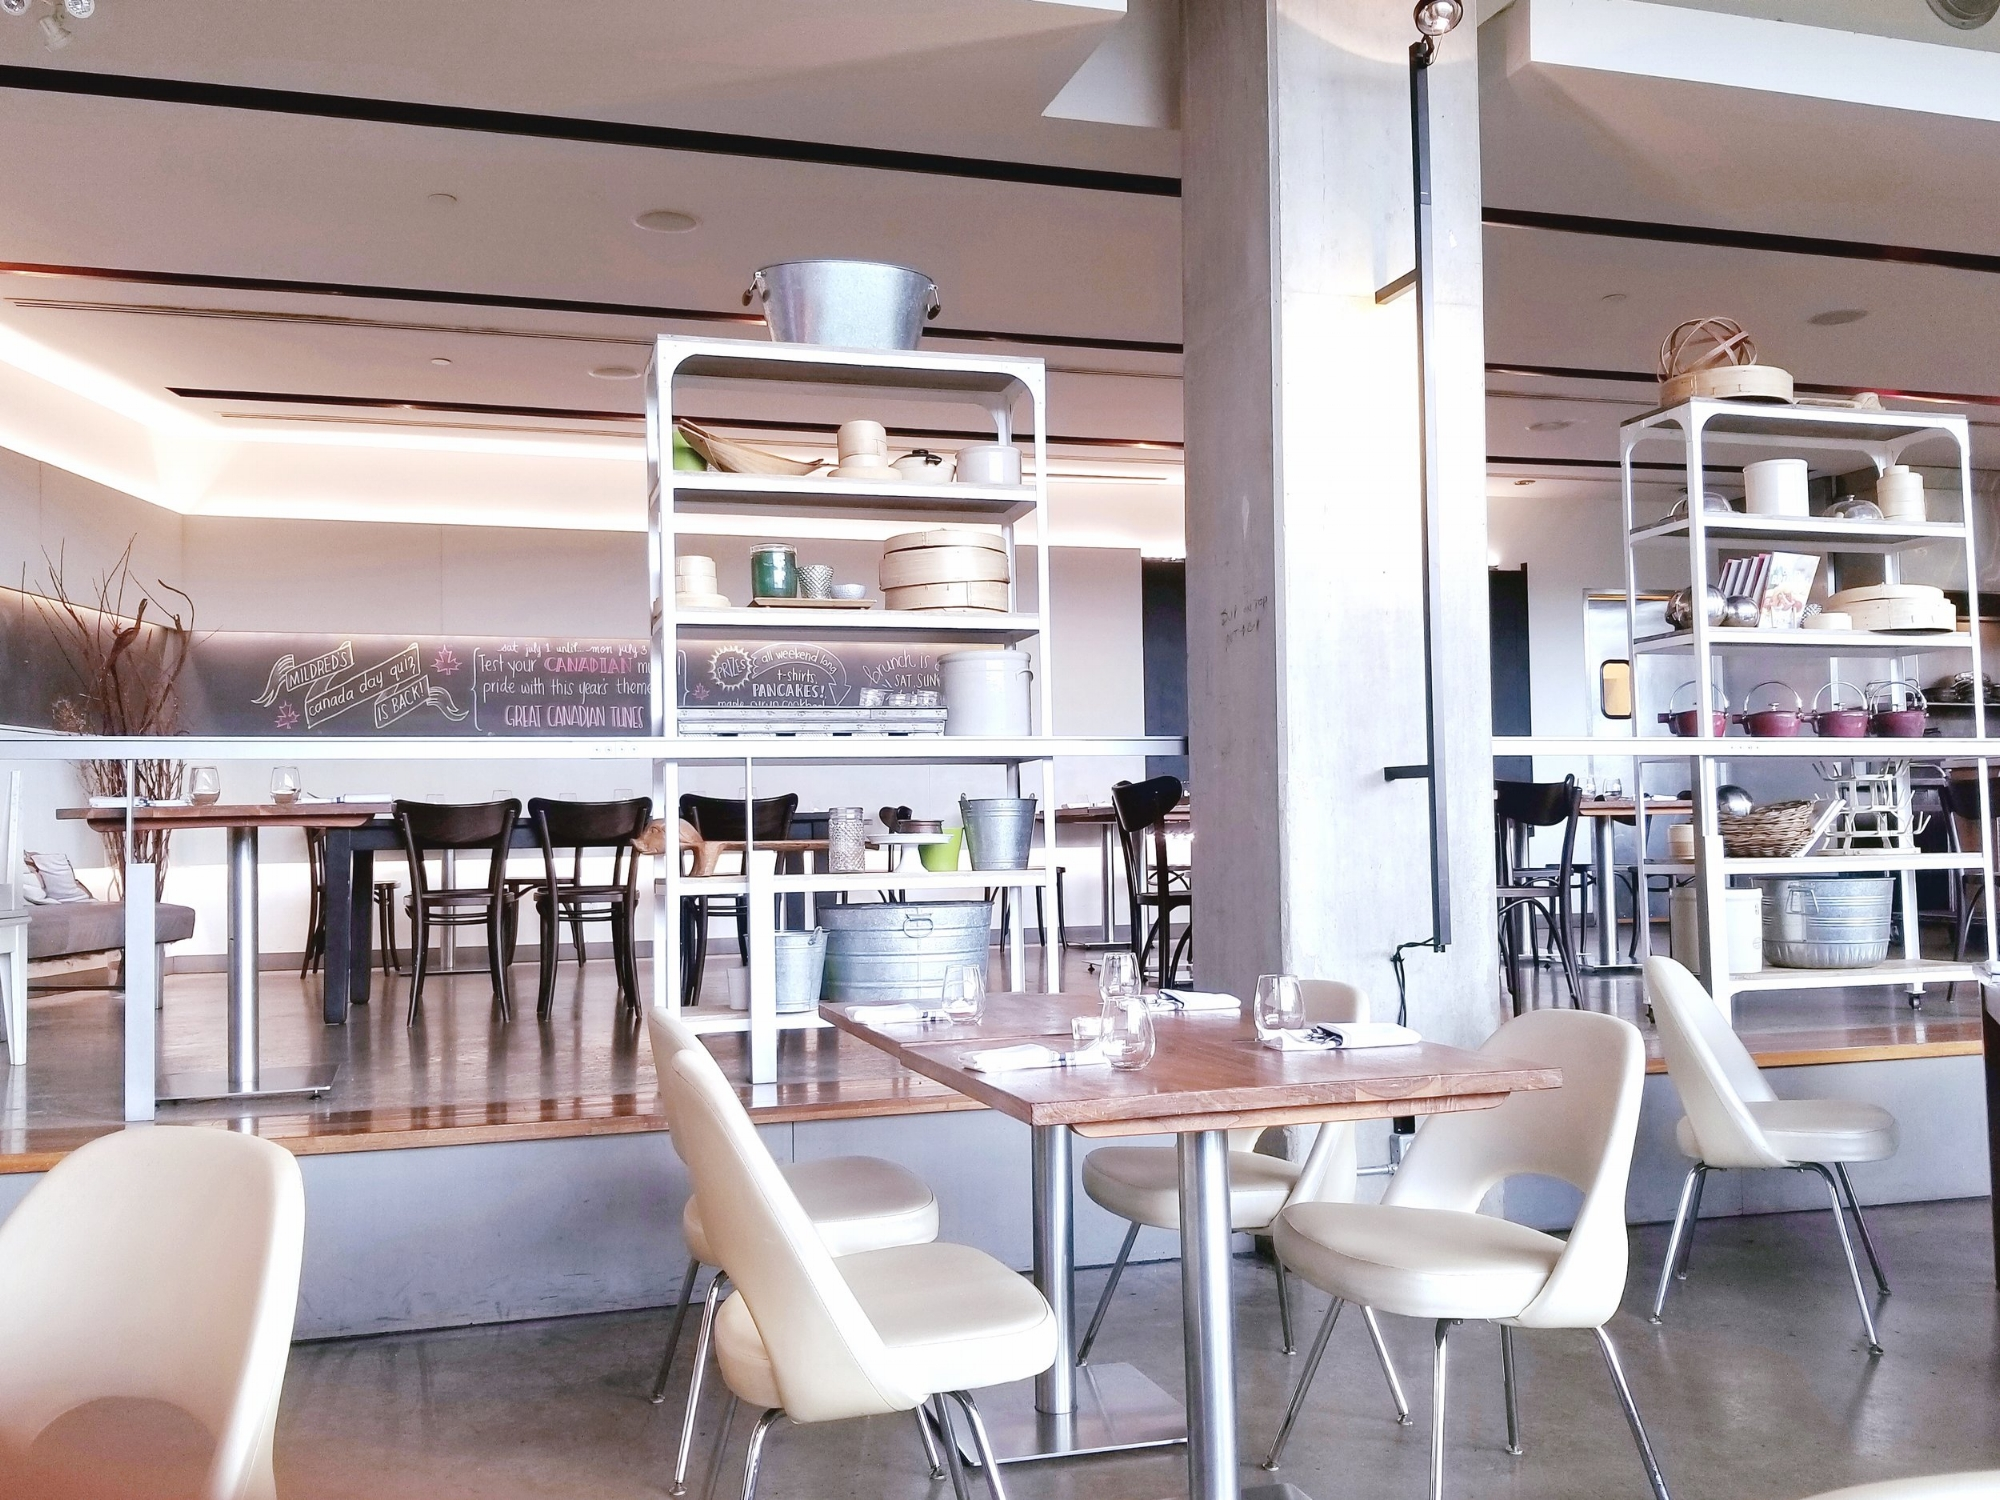 Mildred's Temple Kitchen  Indoor Seating Area   ebbony&lune